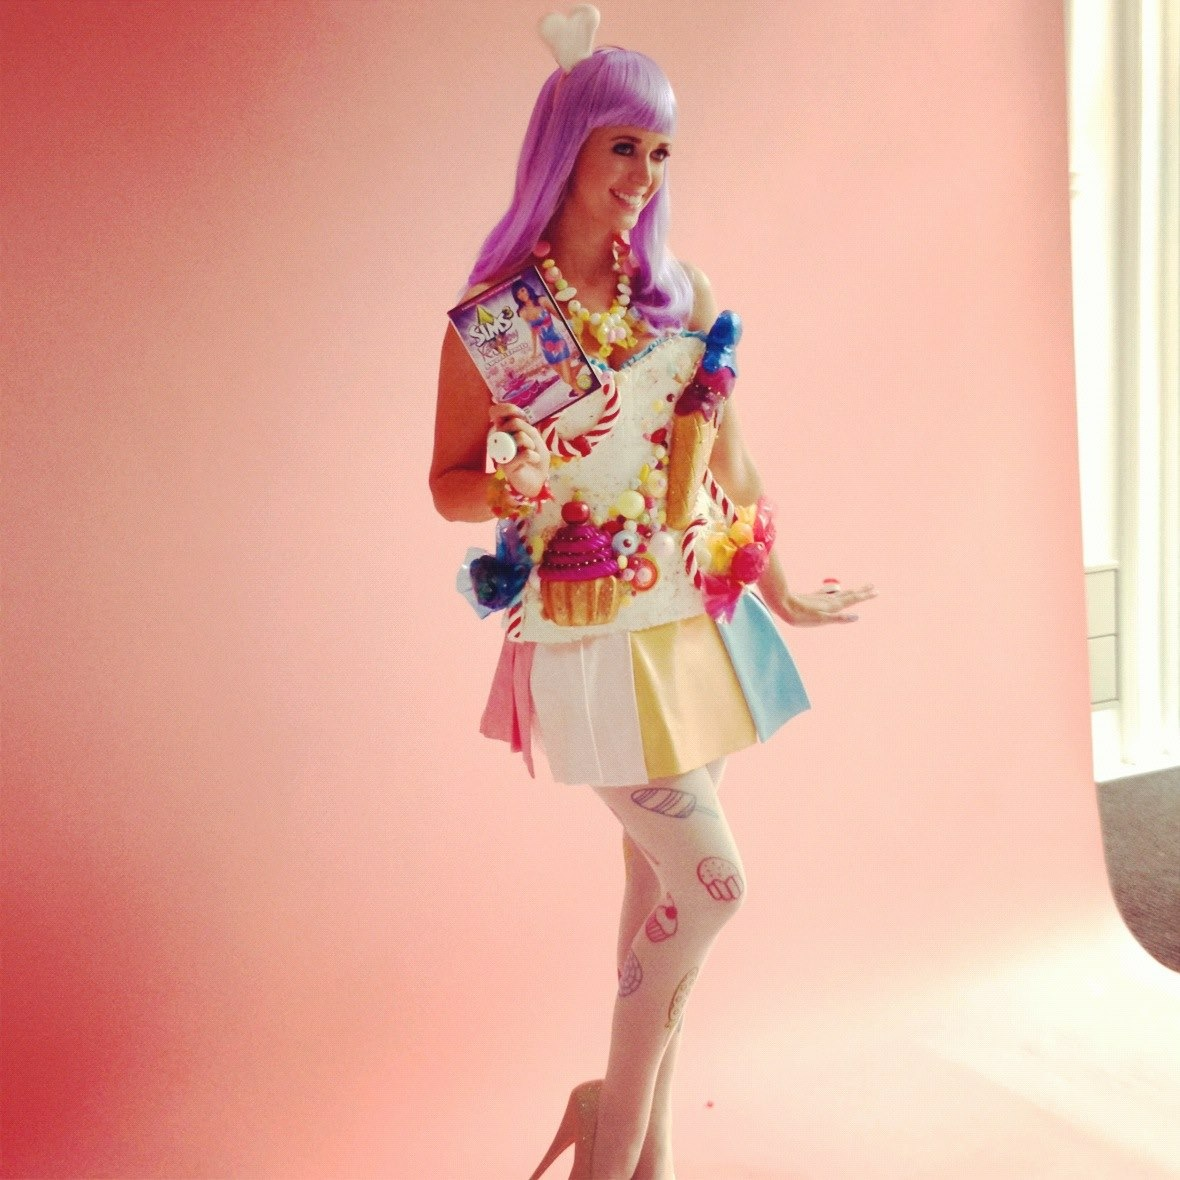 hire a katy perry lookalike tribute